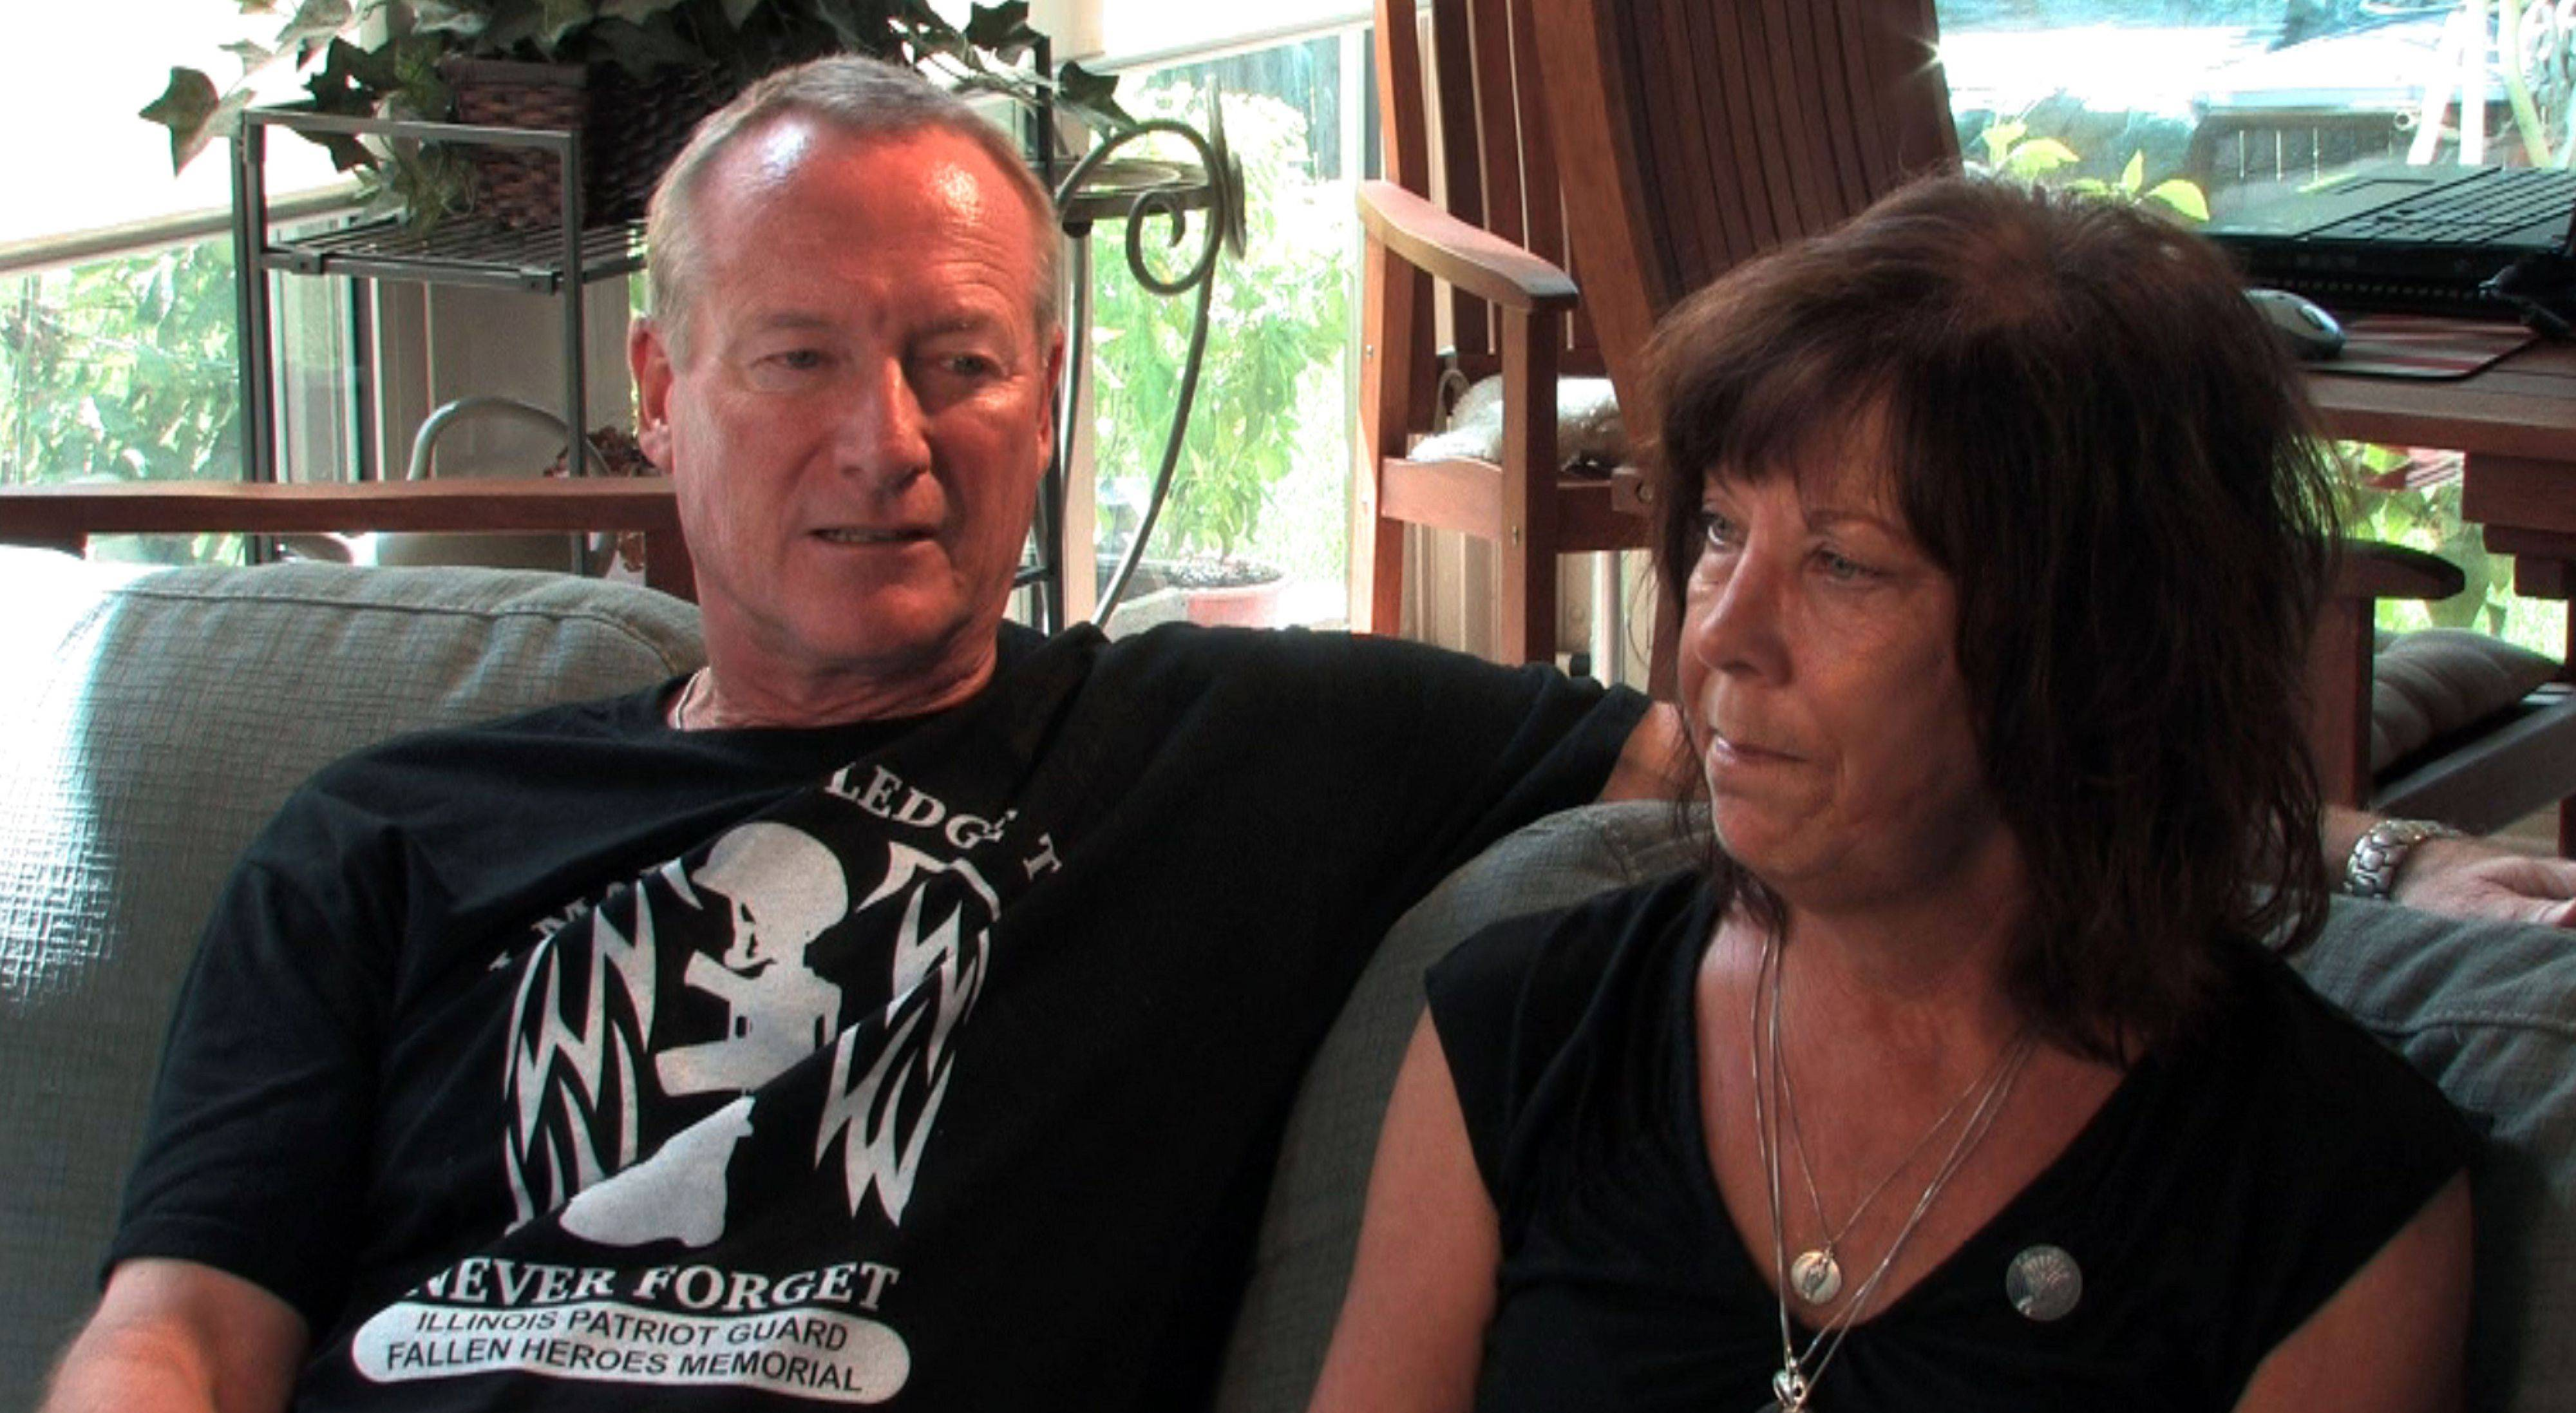 Ken and Patty Boyd of Palatine say son CJ Boyd was just 13 on Sept. 11, 2001, but the attack played into his decision to become a U.S. Marine. CJ Boyd was killed Aug. 19, 2010, in Afghanistan.